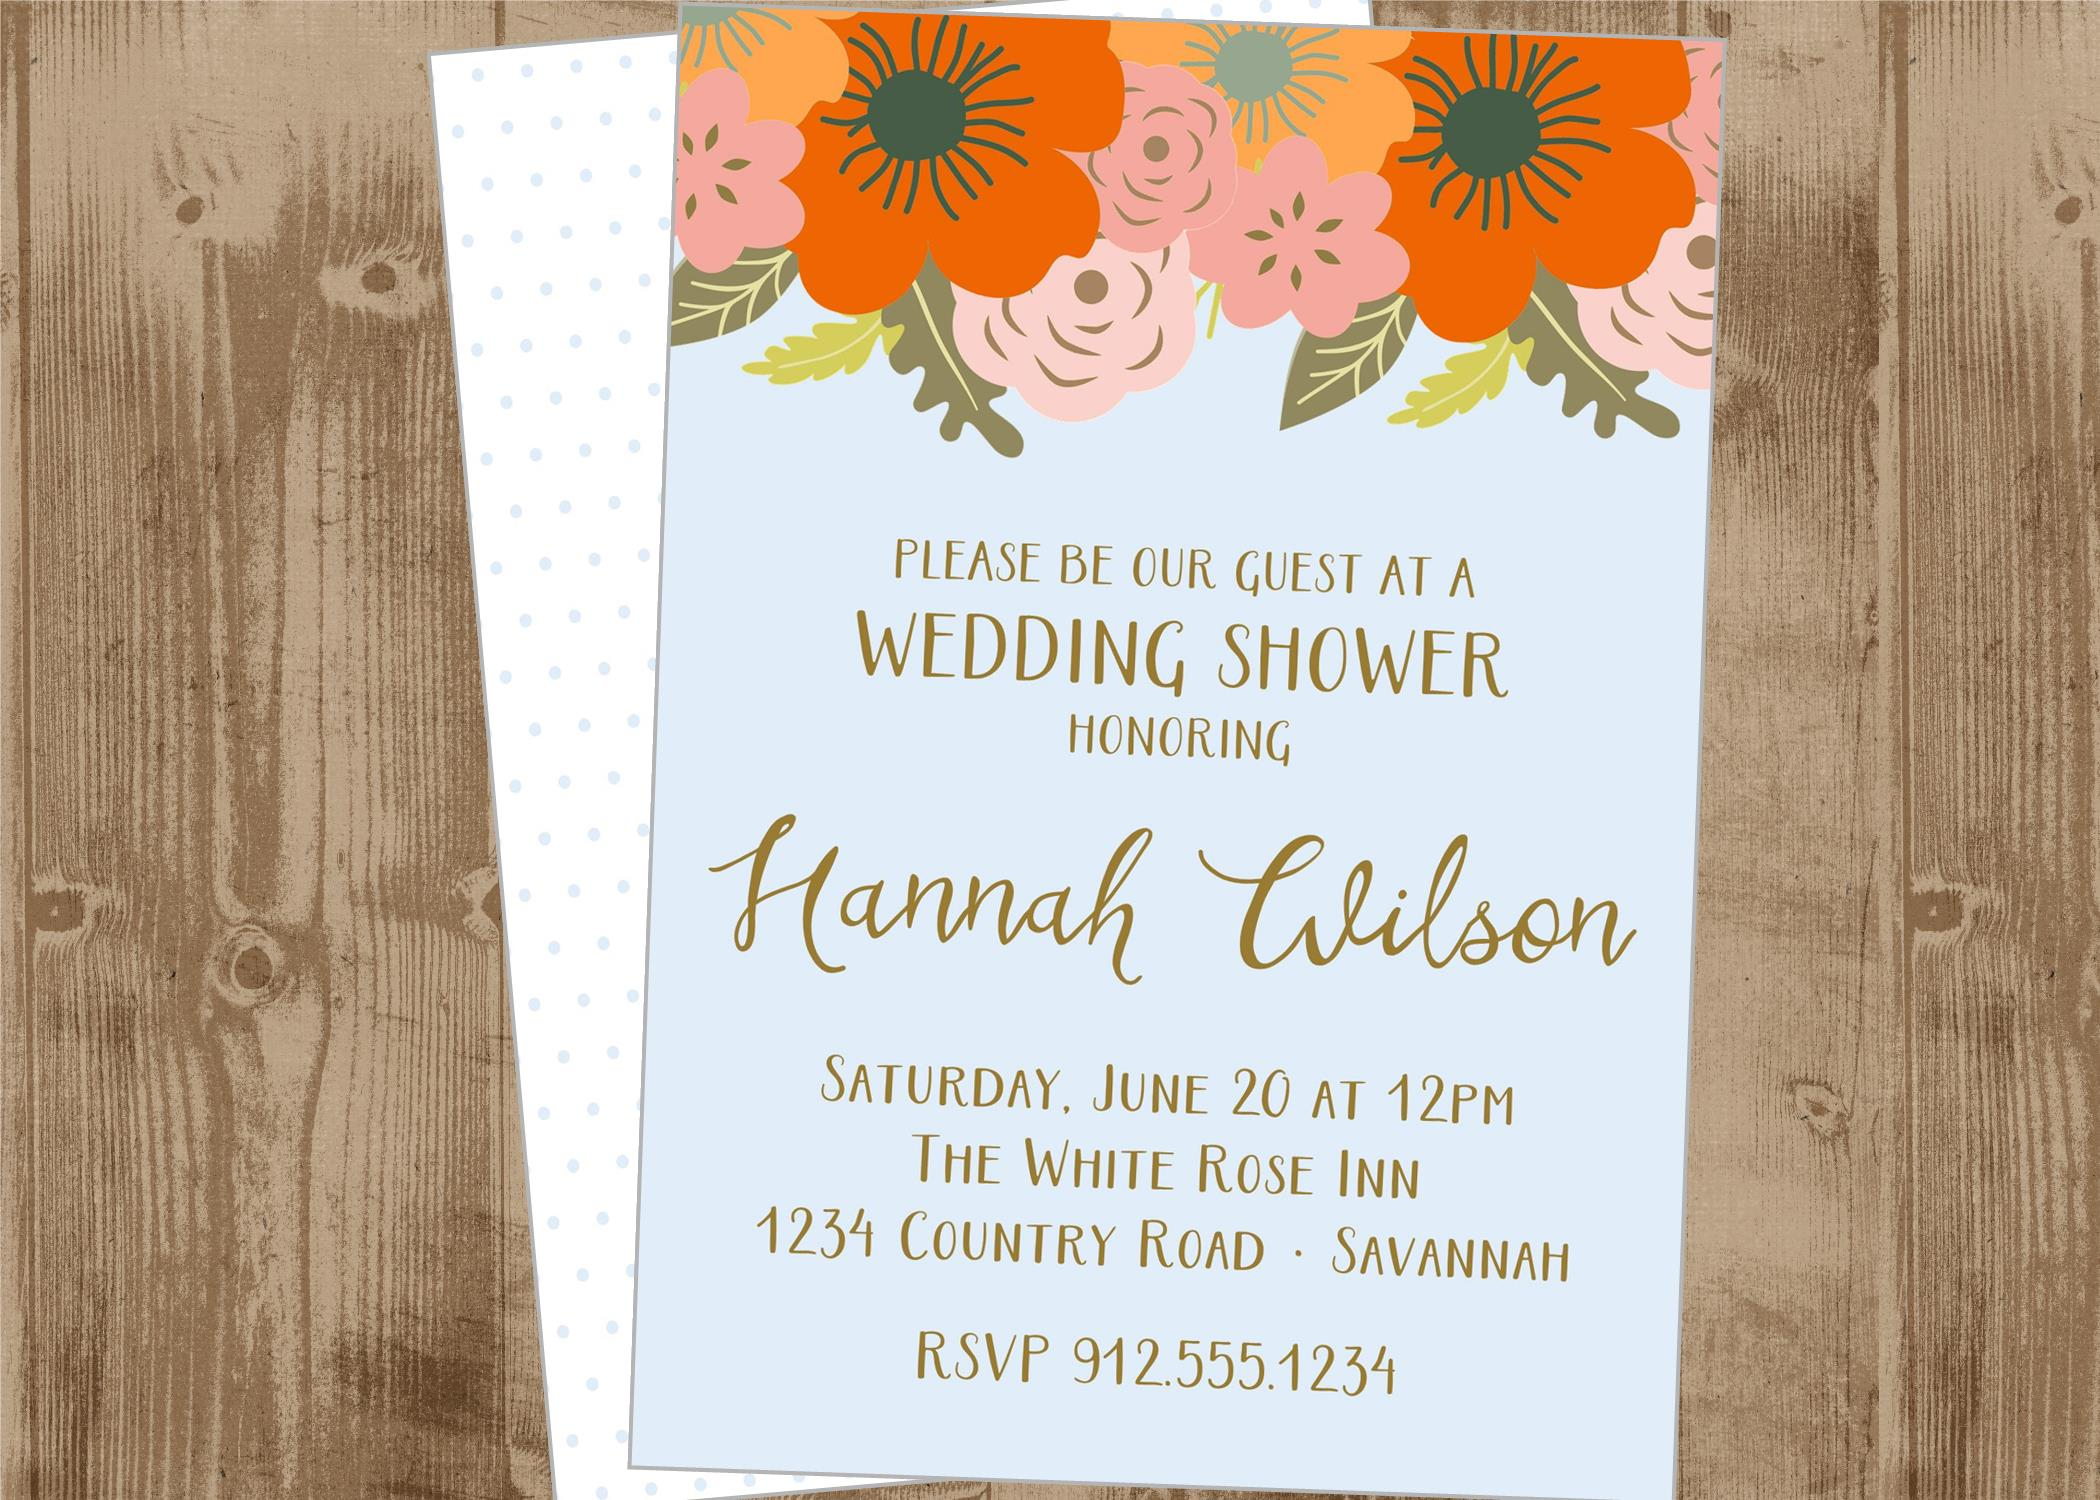 photograph relating to Printable Bridal Shower Invites named Printable Marriage ceremony Shower invite or Help you save the Day Card with Orange, Persimmon, Red, Coral, faded blue and Gold